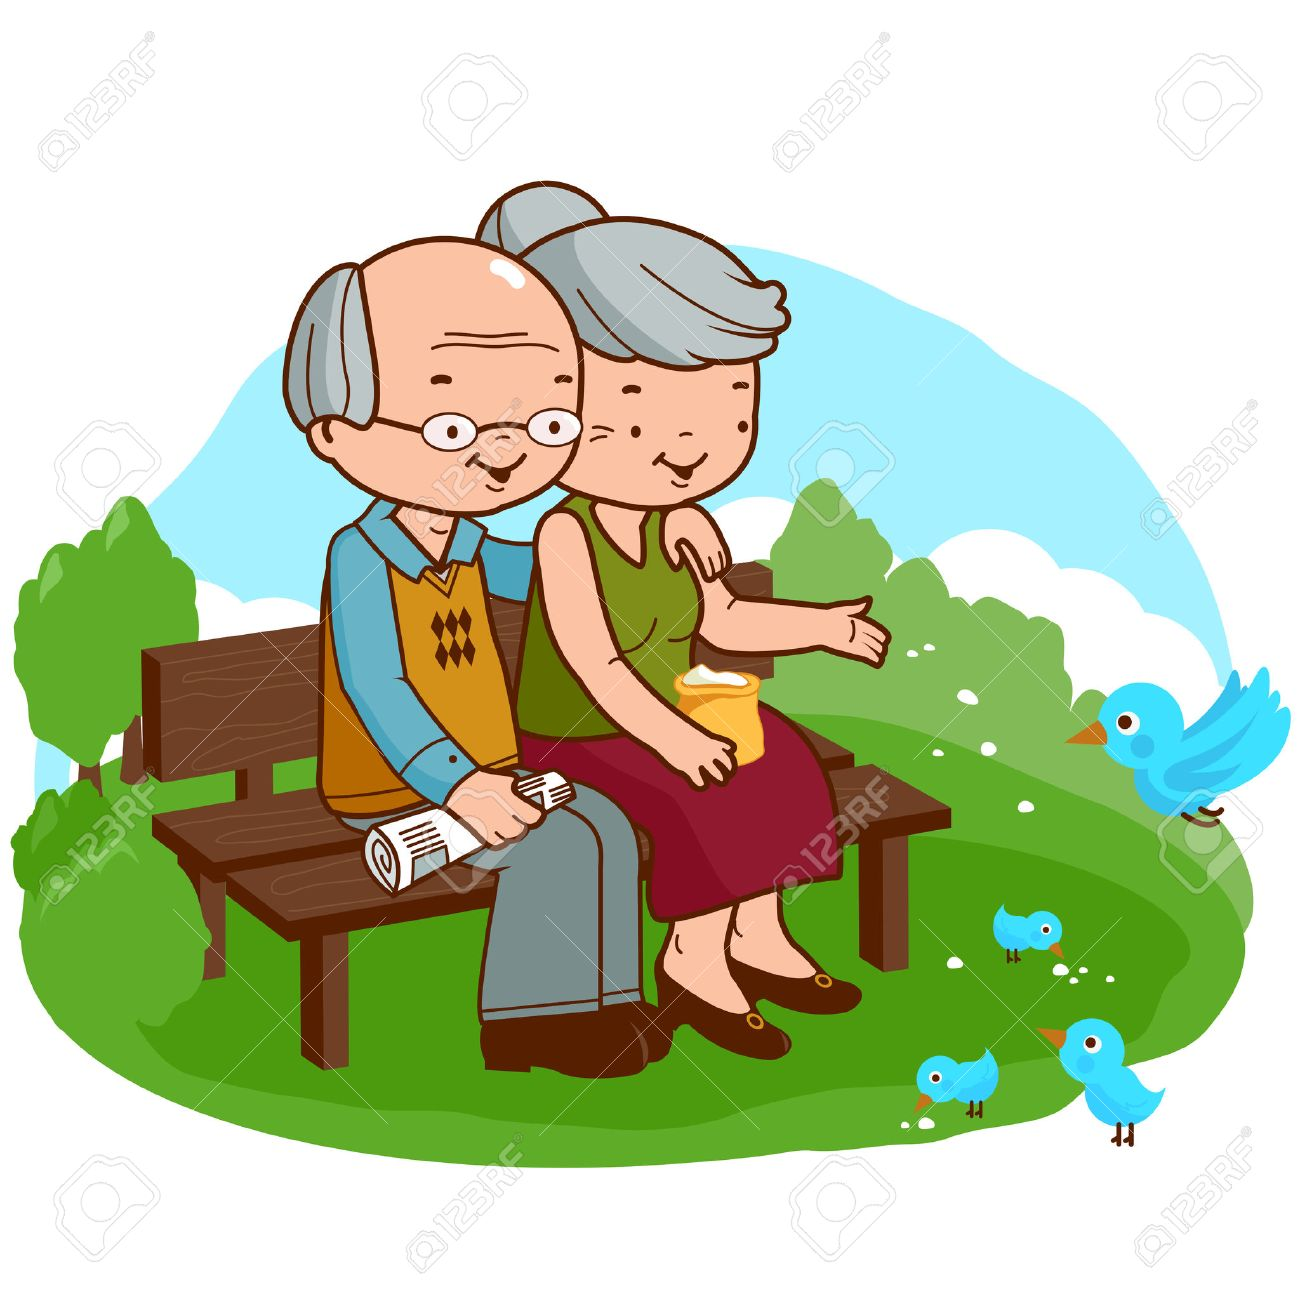 old couple at the park royalty free cliparts vectors and stock rh 123rf com old couple clip art in the public domain old couple clip art black and white